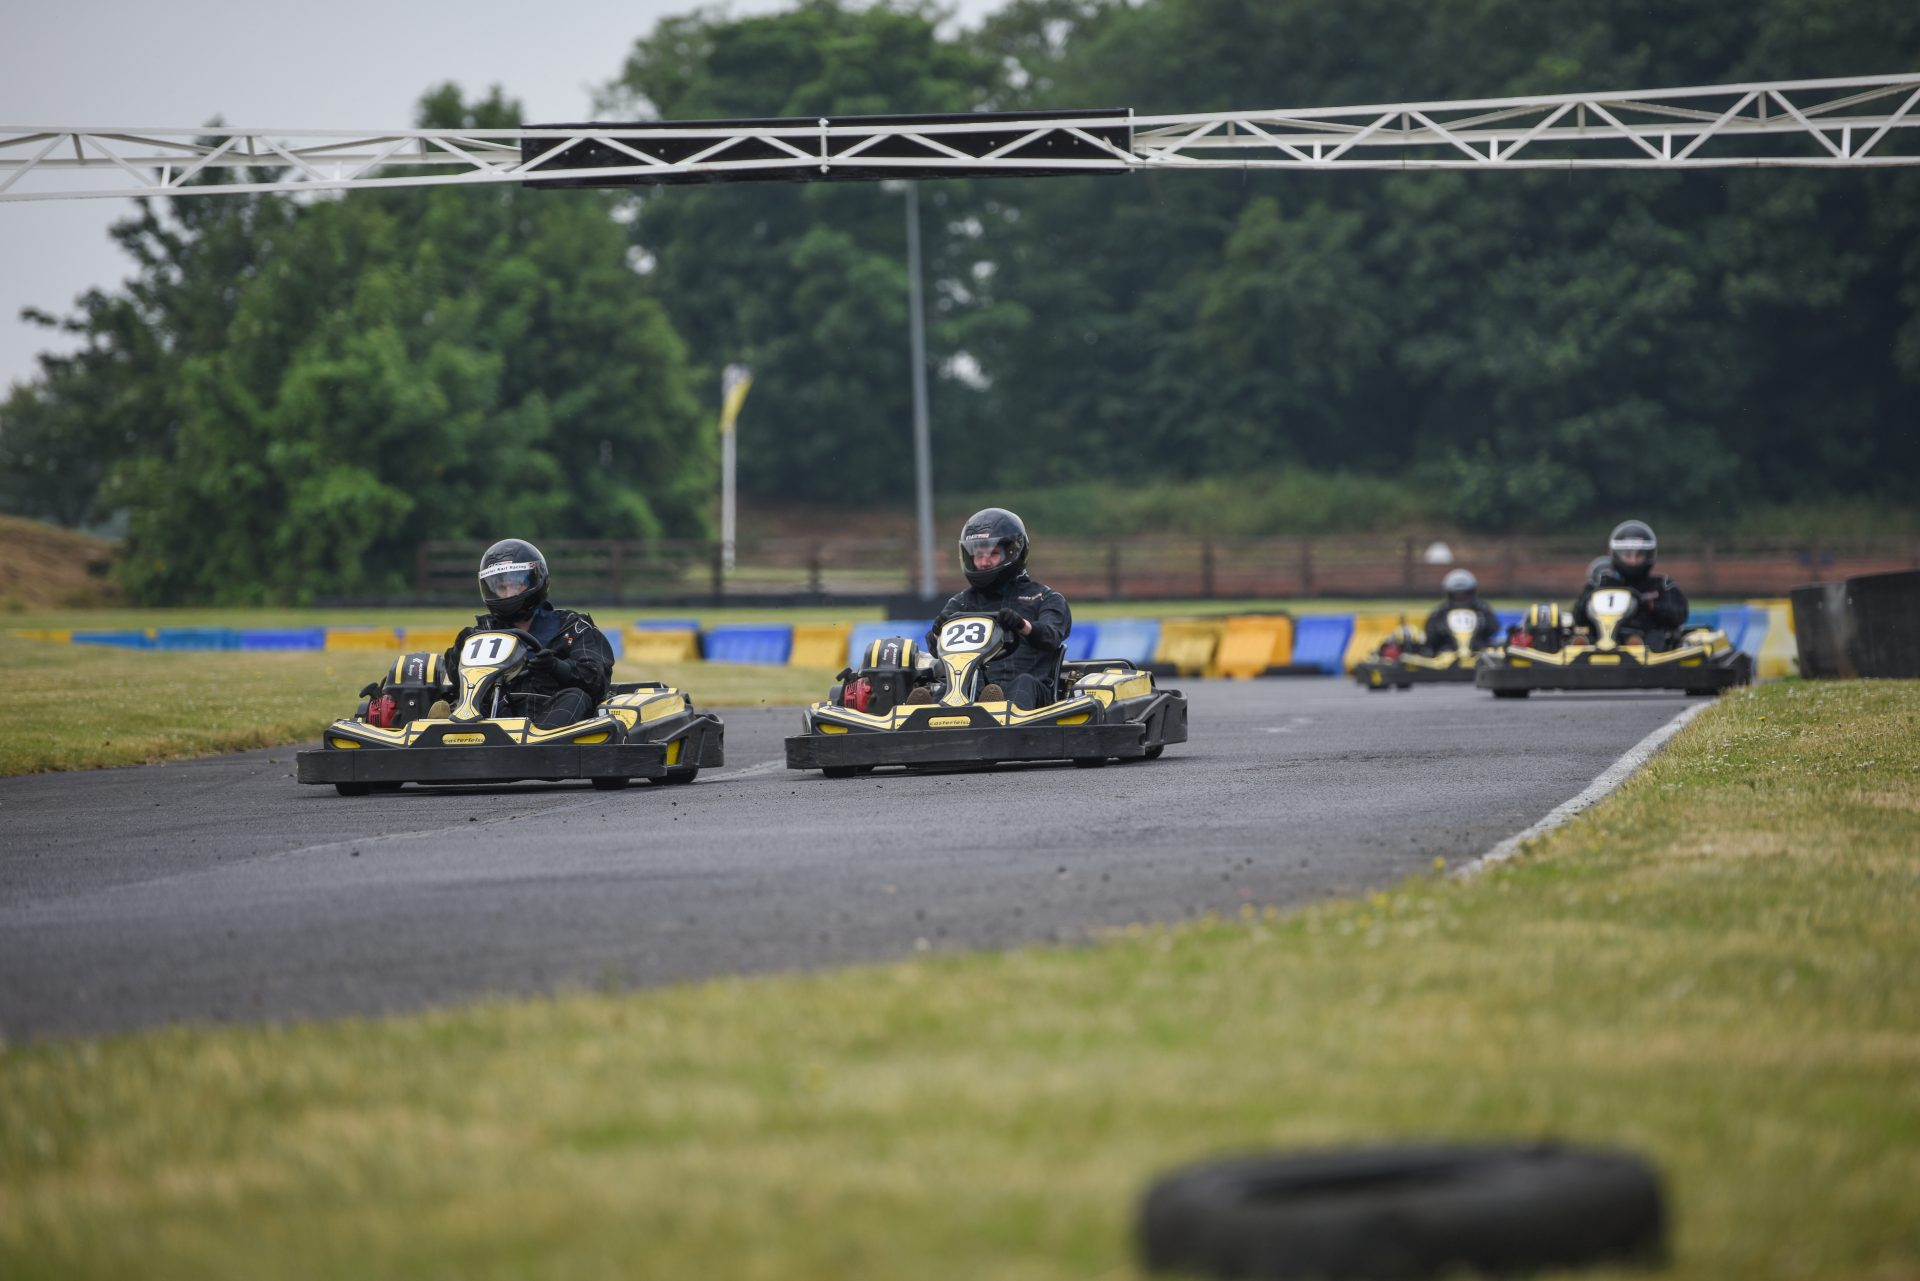 Circuito Karting : Ancaster leisure karting paintball airsoft more grantham